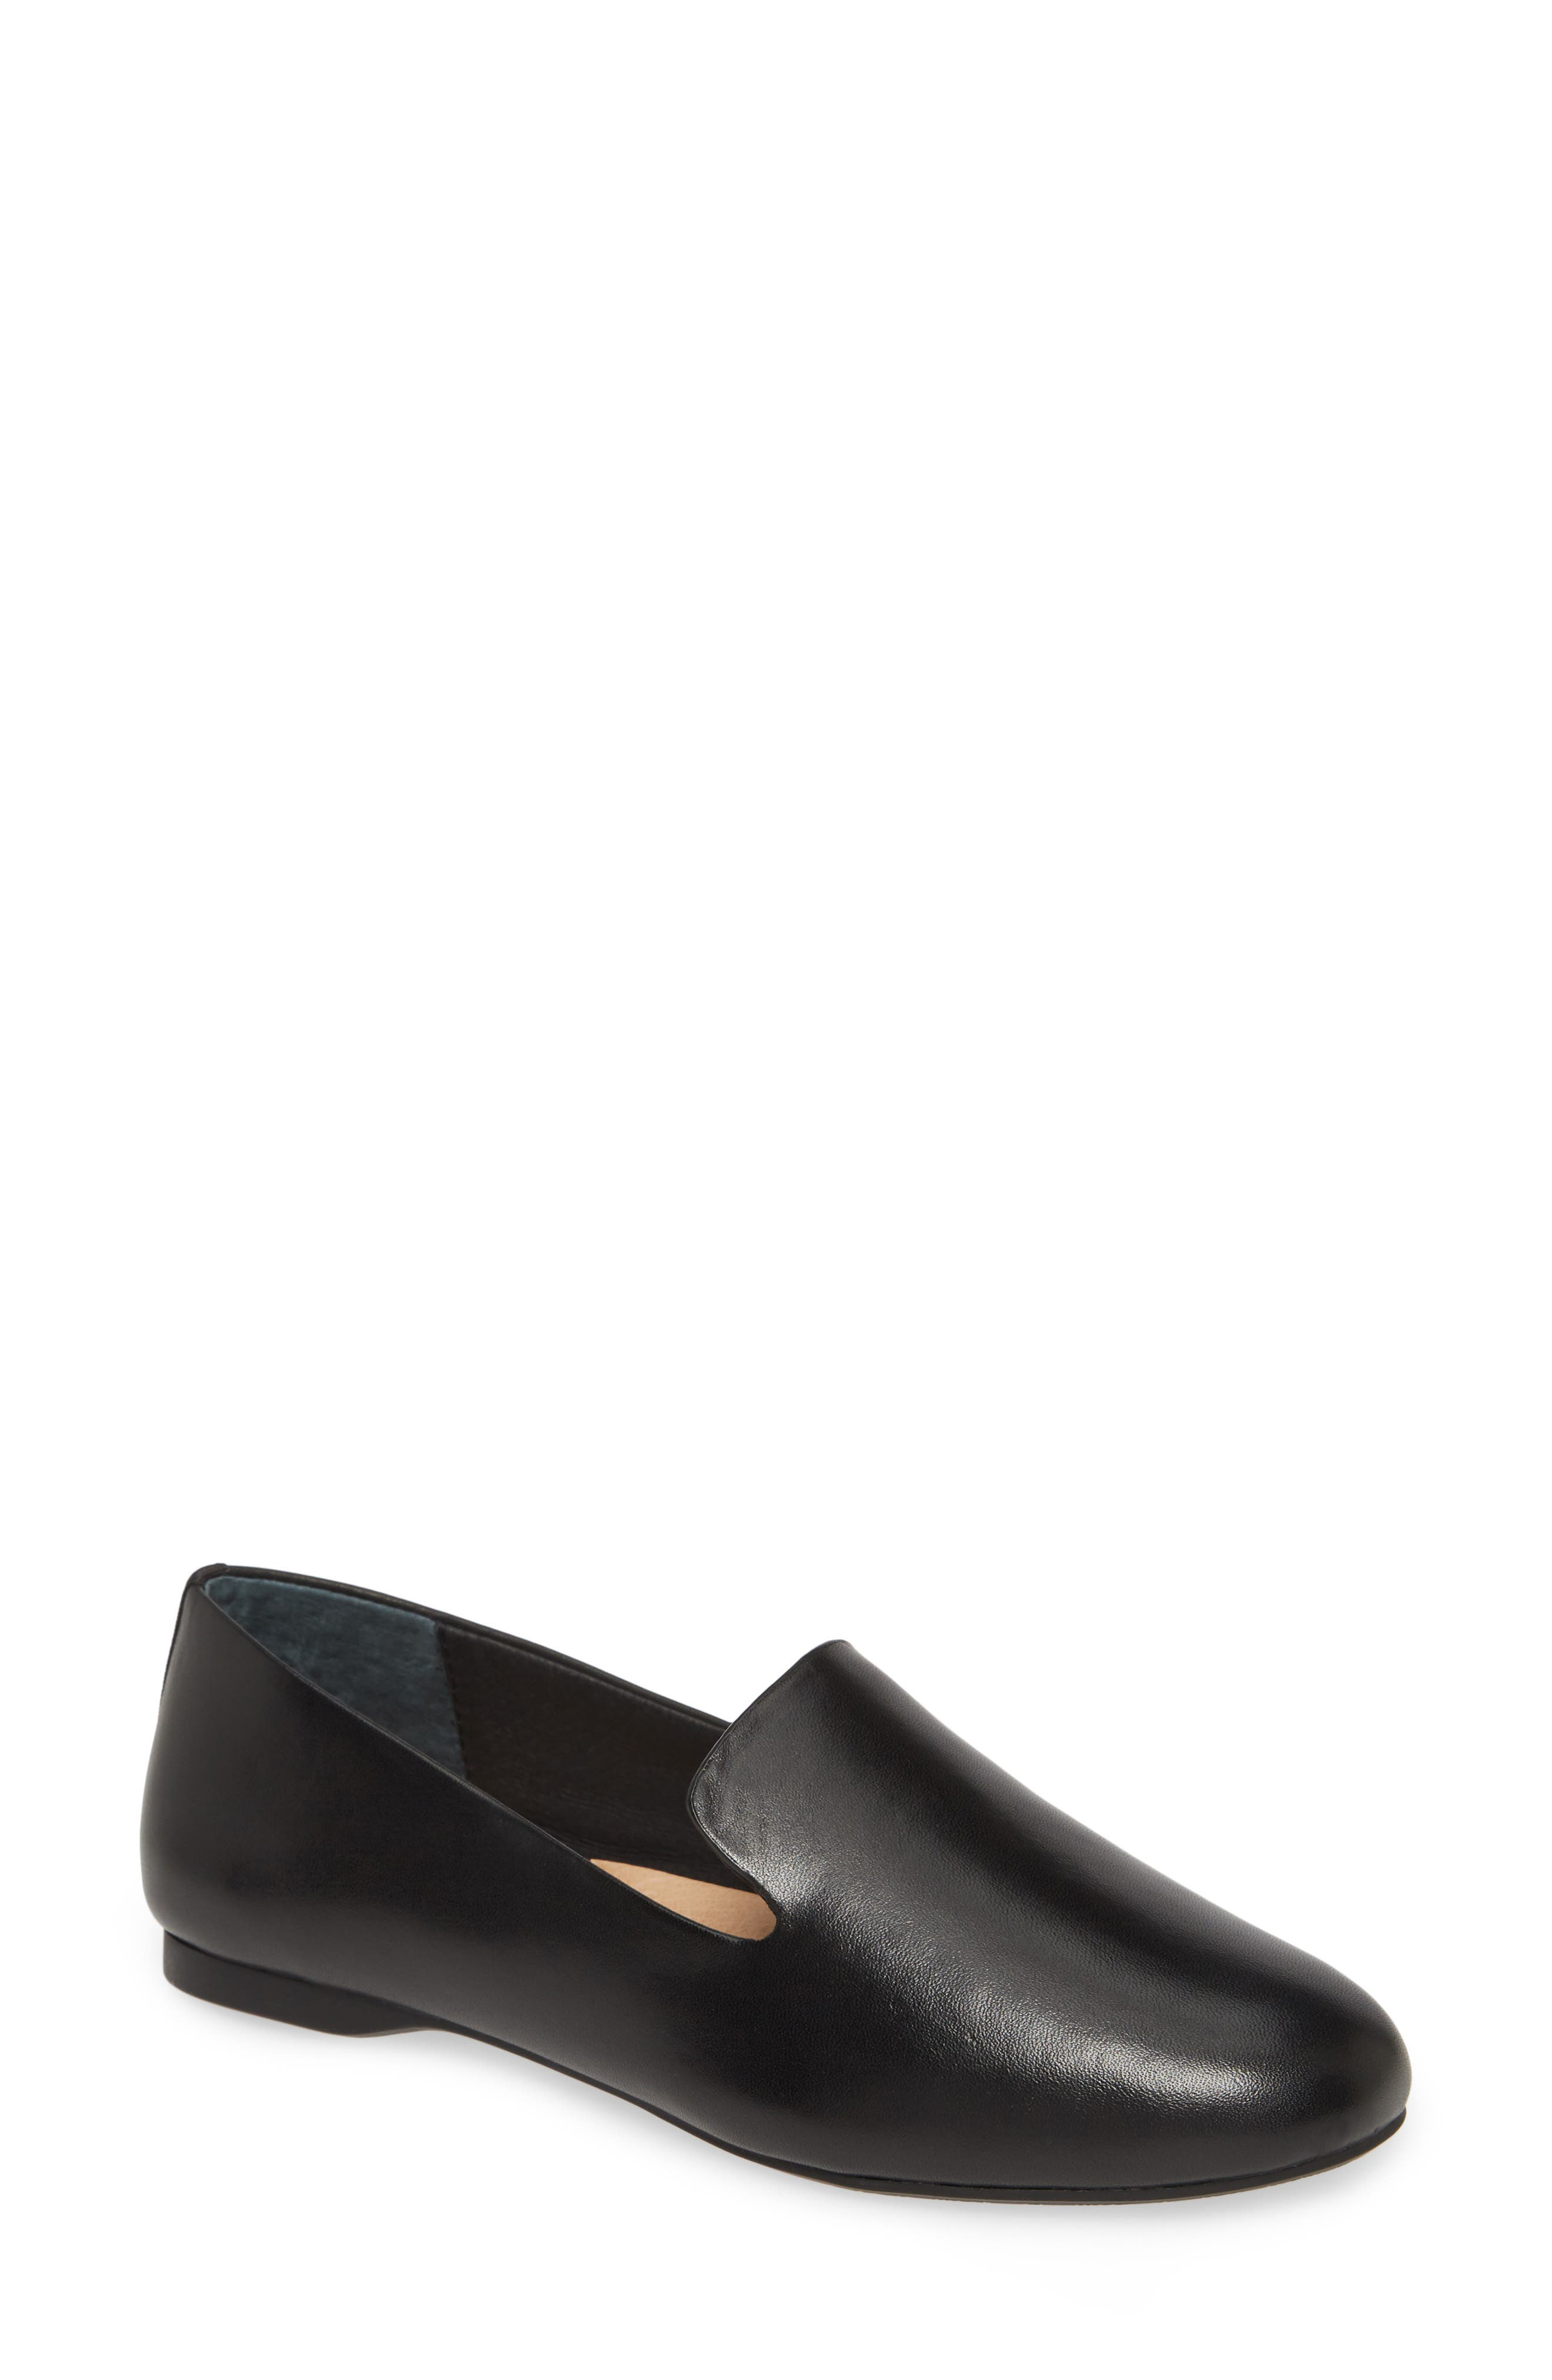 Birdies Starling Leather Flat (Women)